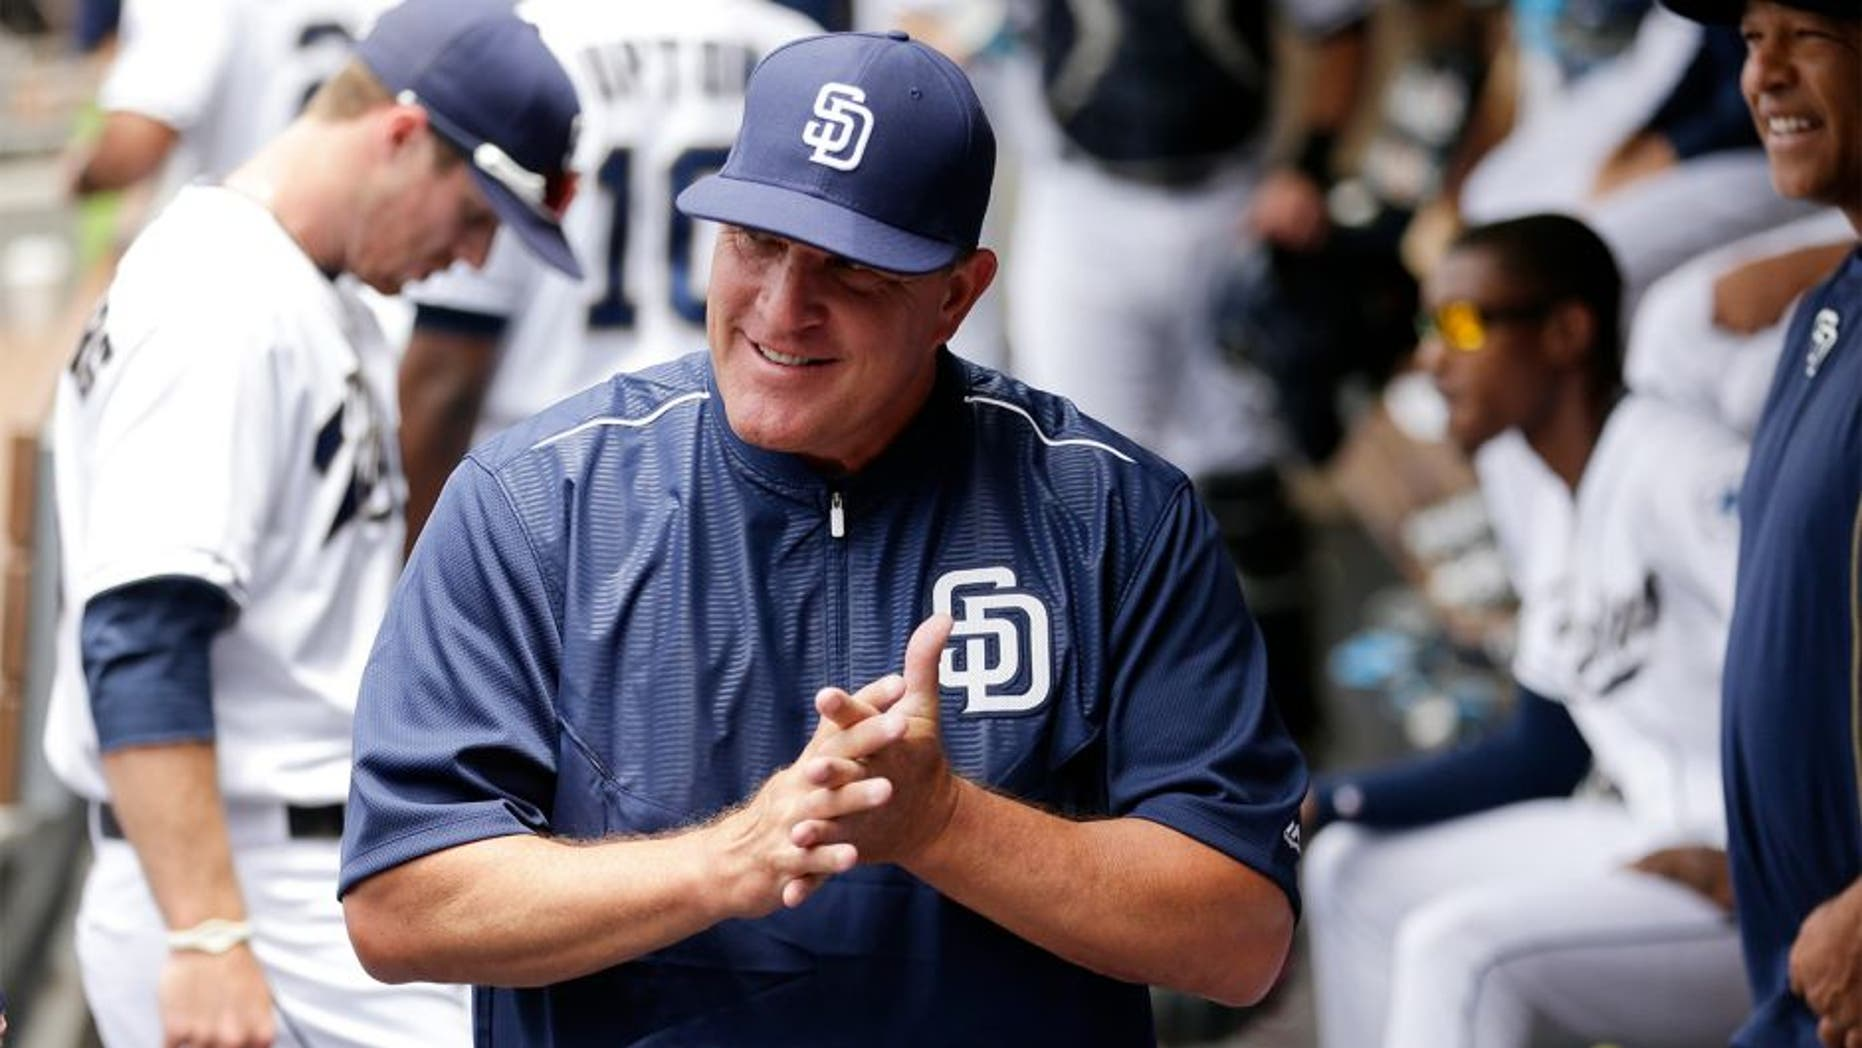 San Diego Padres interim manager Pat Murphy looks on from the dugout before the Padres play the Oakland Athletics in a baseball game Tuesday, June 16, 2015, in San Diego. (AP Photo/Gregory Bull)